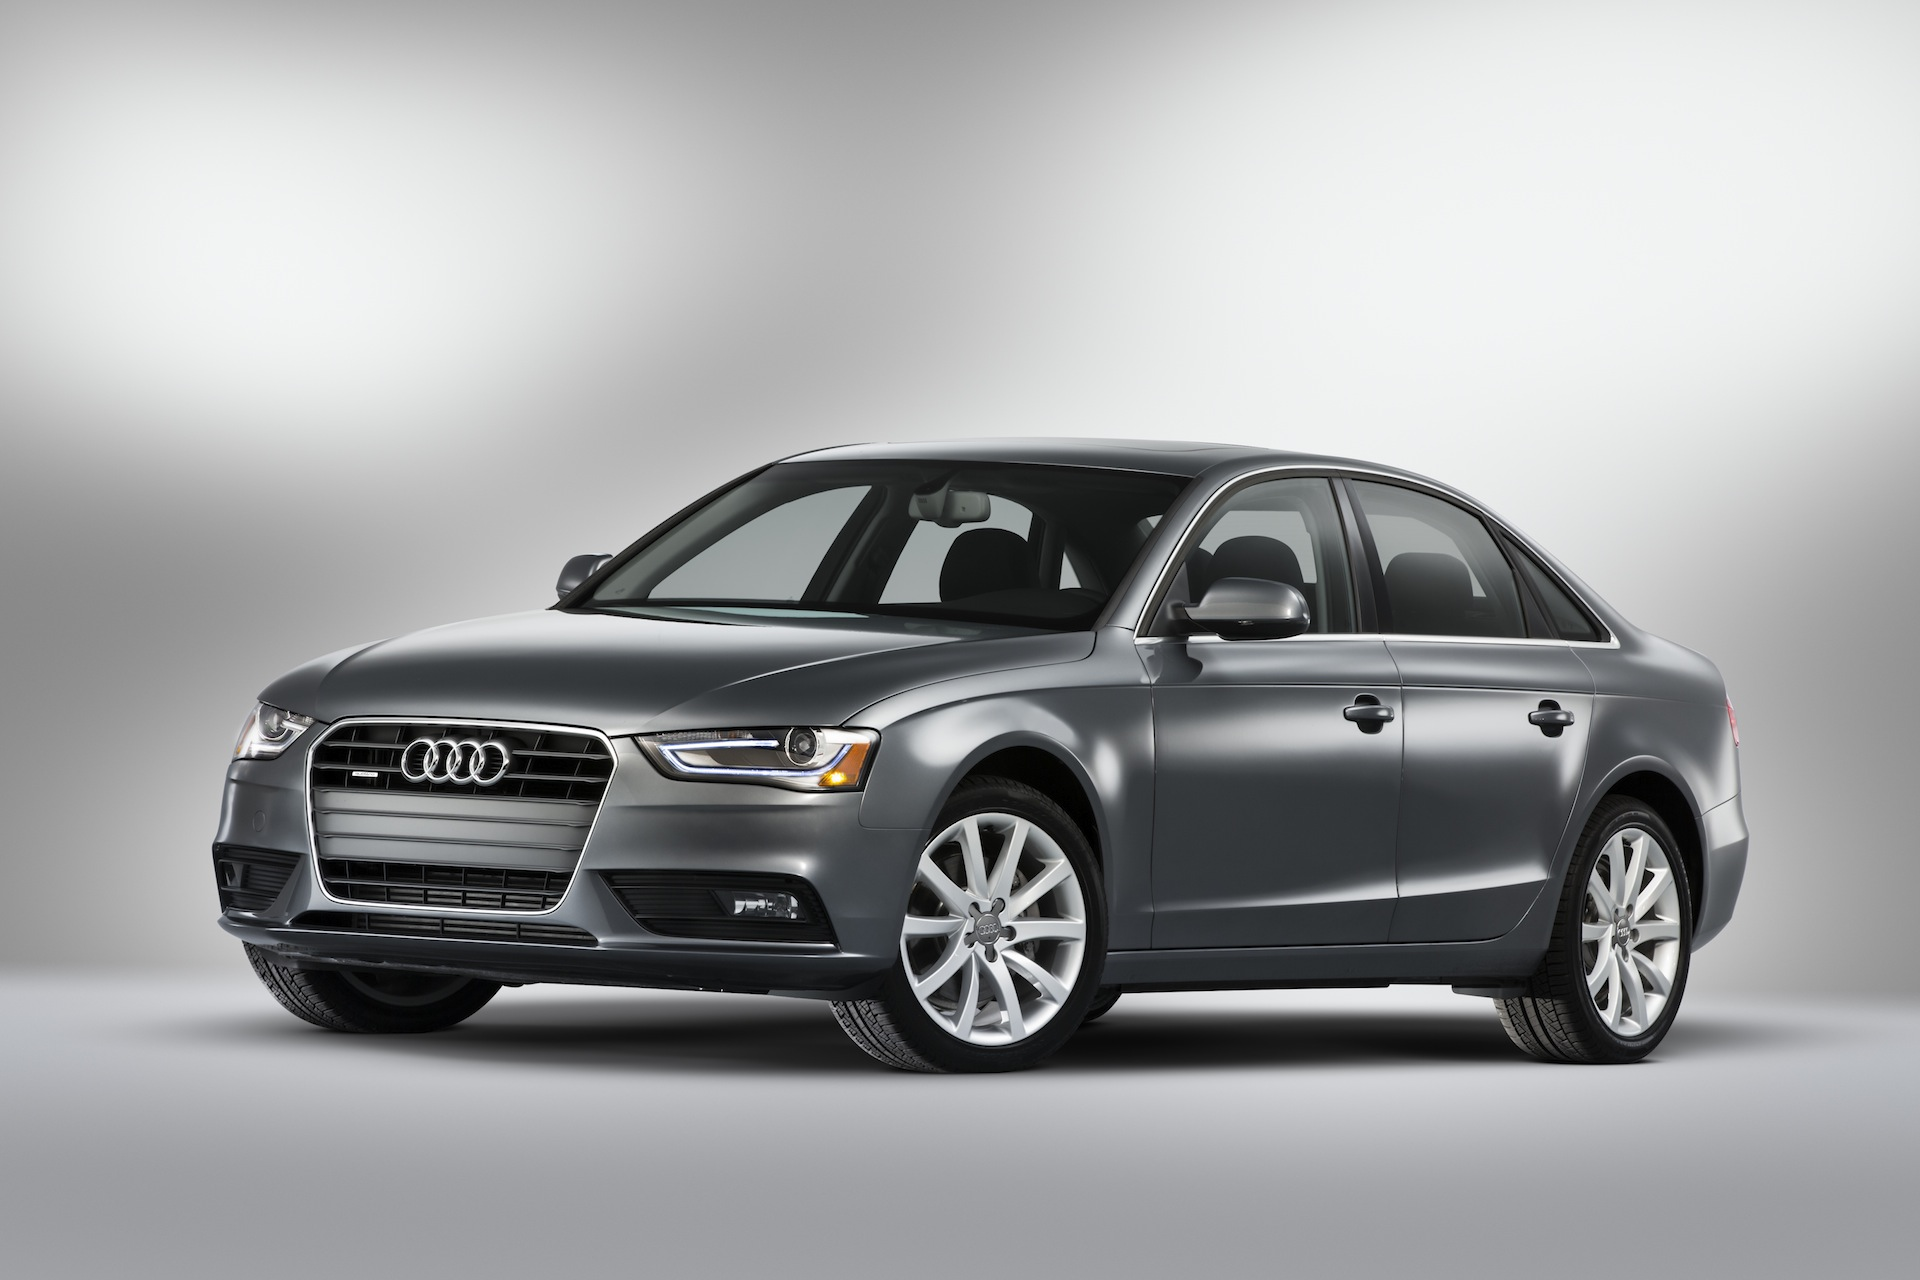 Land Rover Louisville >> 2014 Audi A4 Review, Ratings, Specs, Prices, and Photos